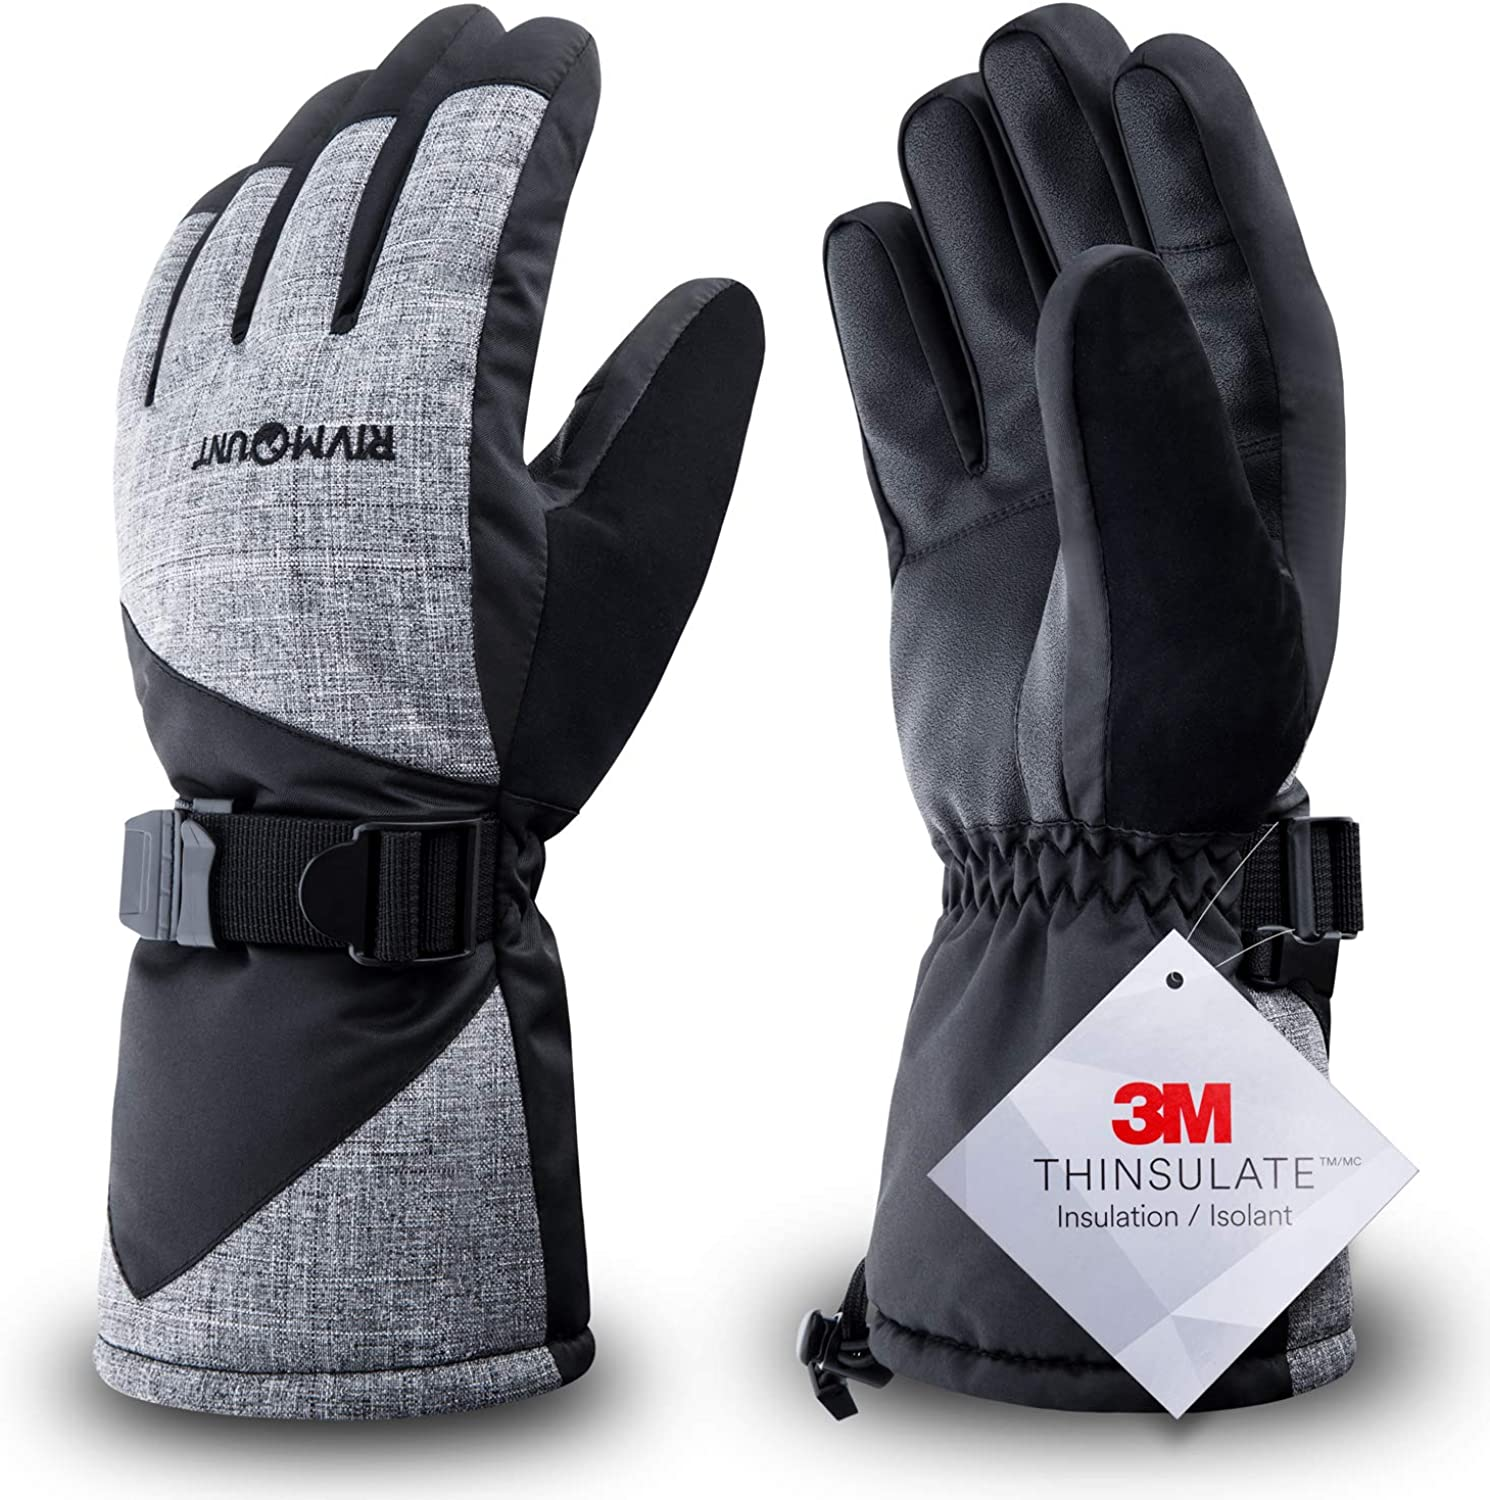 RIVMOUNT Winter Ski Gloves for Men Women,3M Thinsulate Keep Warm Waterproof Gloves for Cold Weather Outside RSG601